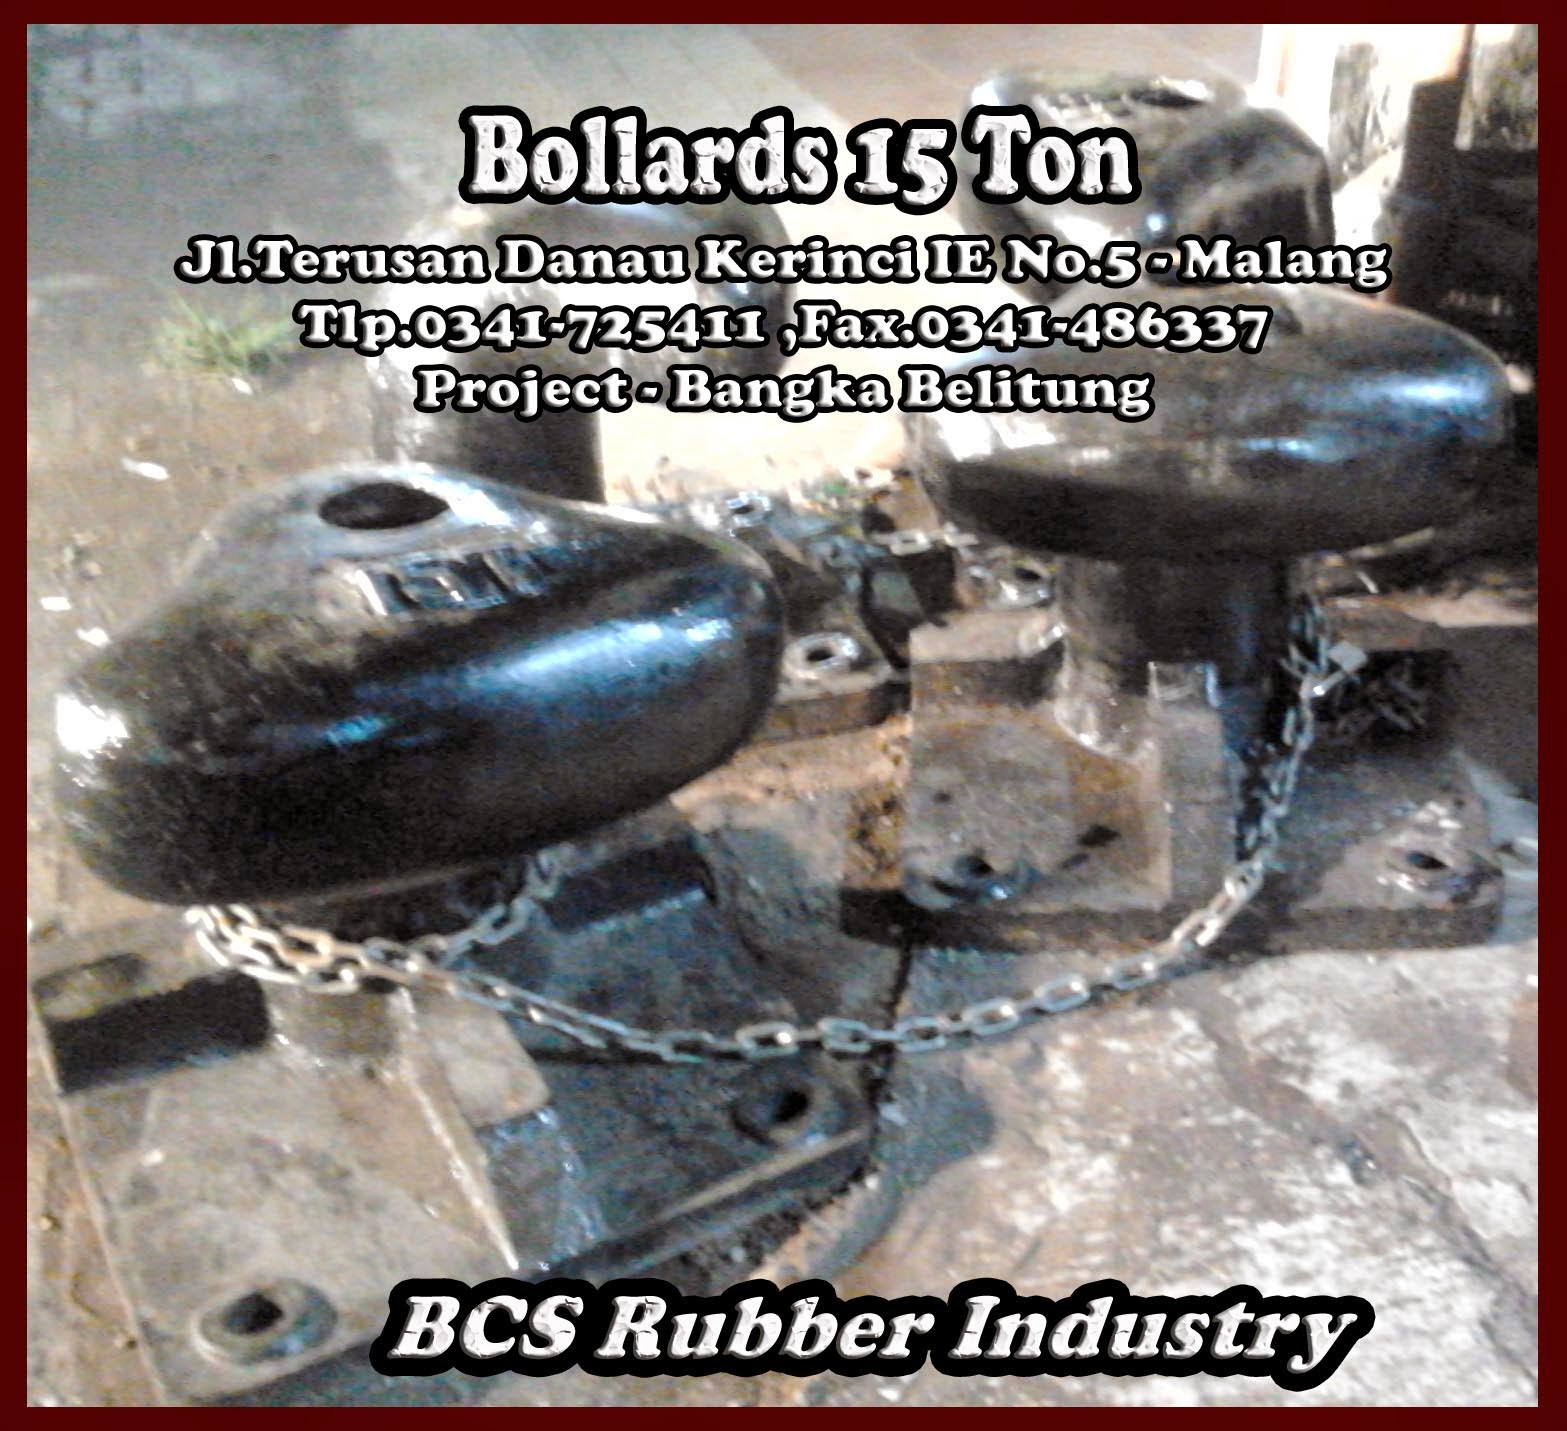 Bollards,Rubber Fender,BCS Rubber Industry